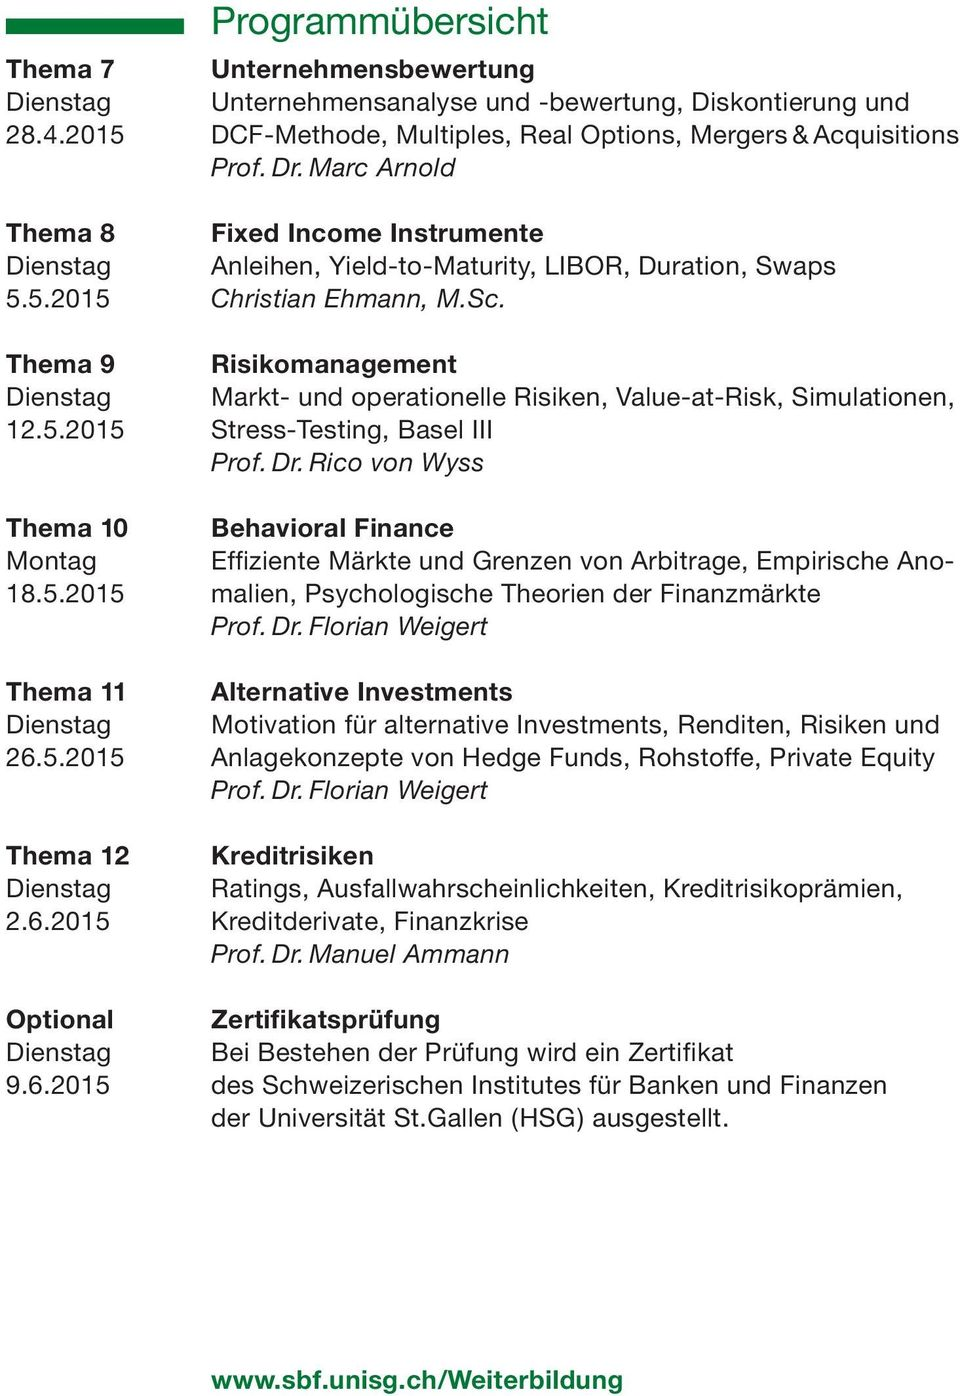 Thema 9 Risikomanagement Dienstag Markt- und operationelle Risiken, Value-at-Risk, Simulationen, 12.5.2015 Stress-Testing, Basel III Prof. Dr.